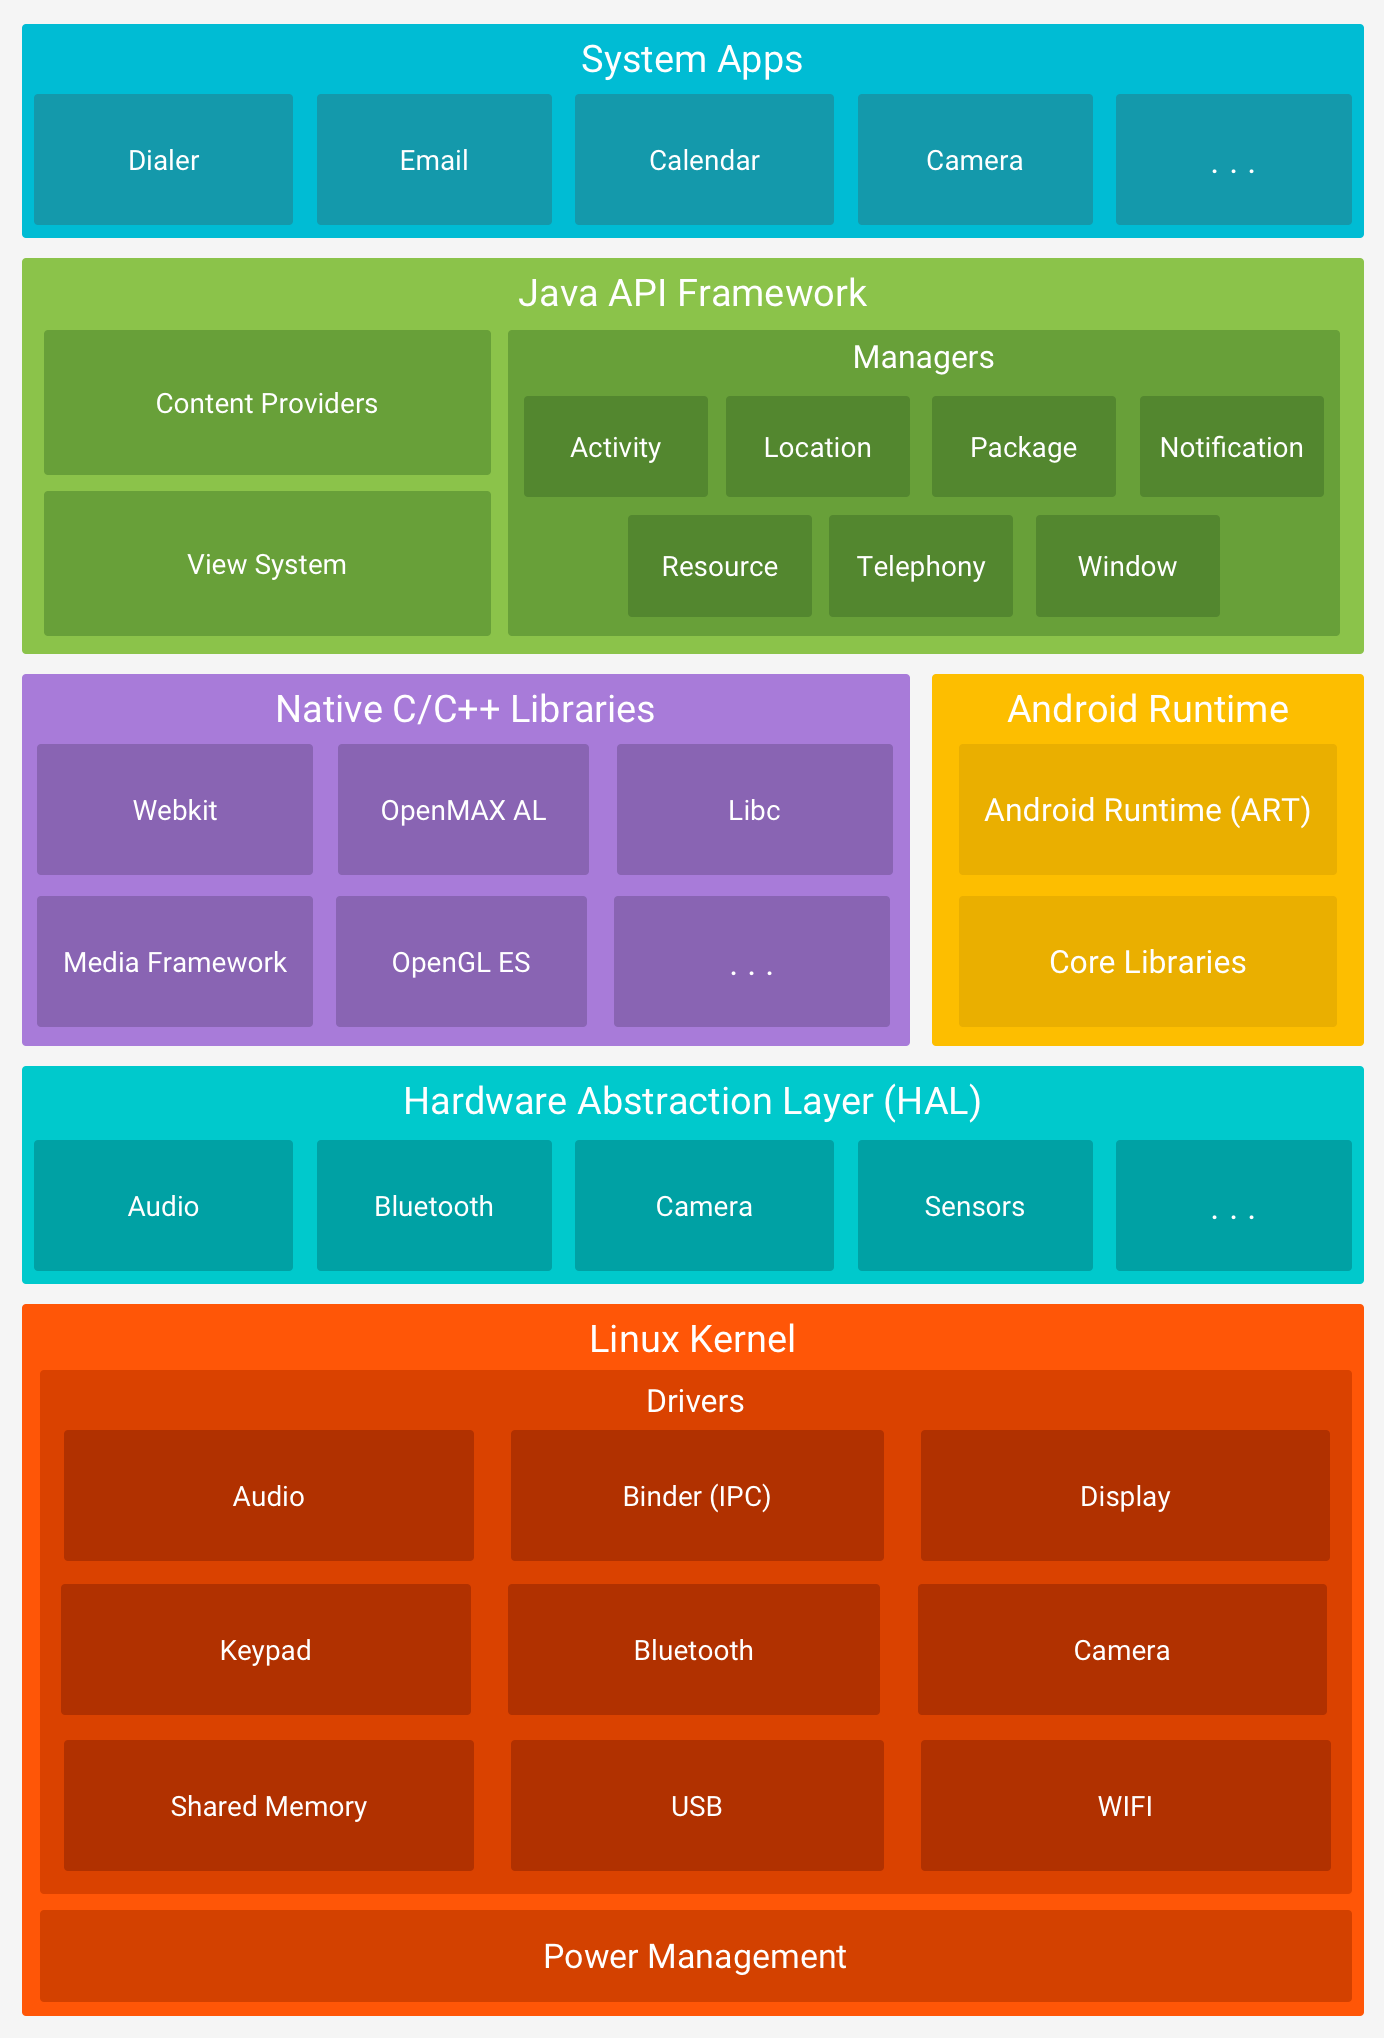 The diagram from Google shows that Android is built on top of the Linux Kernel